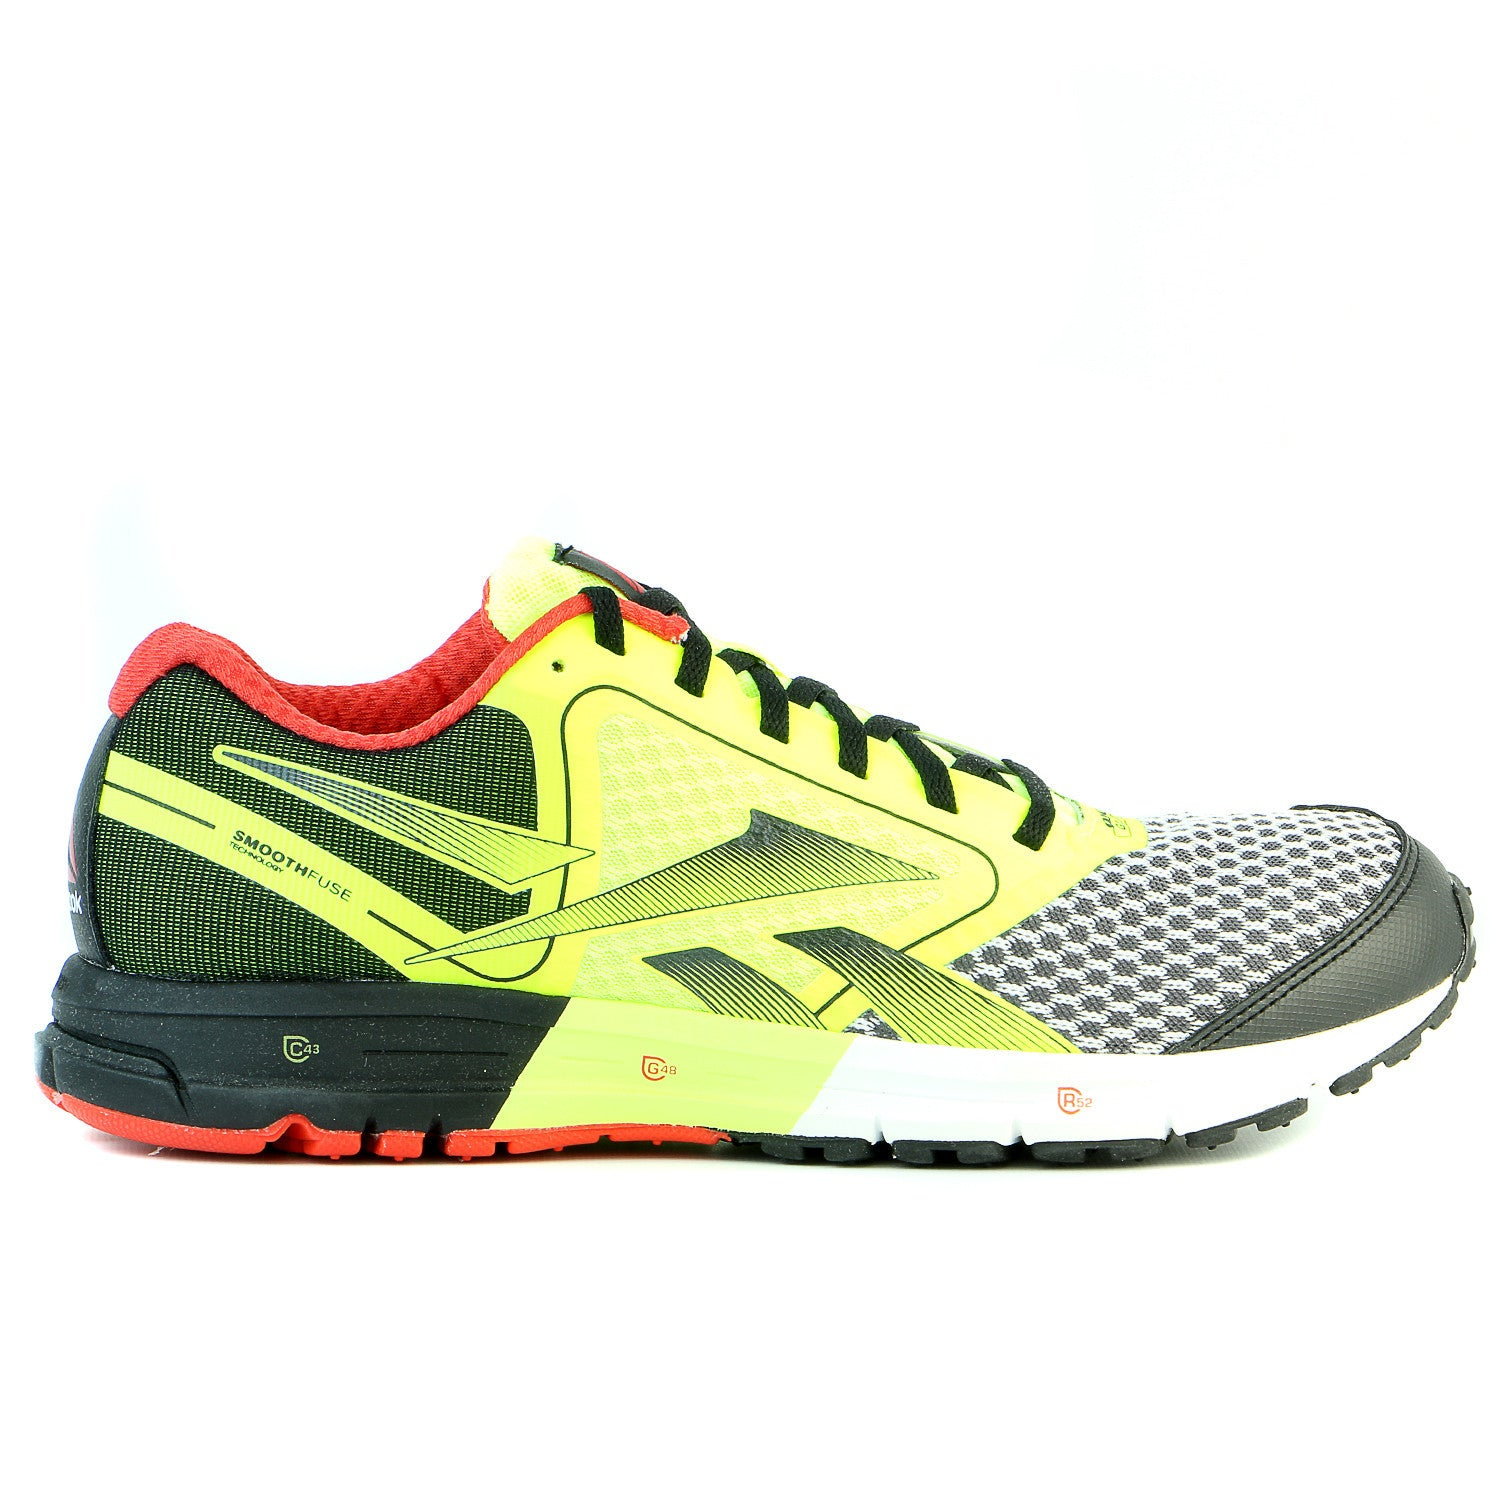 4283897423f659 Reebok One Guide Running Shoe - Black-Yellow-Red - Mens - Shoplifestyle